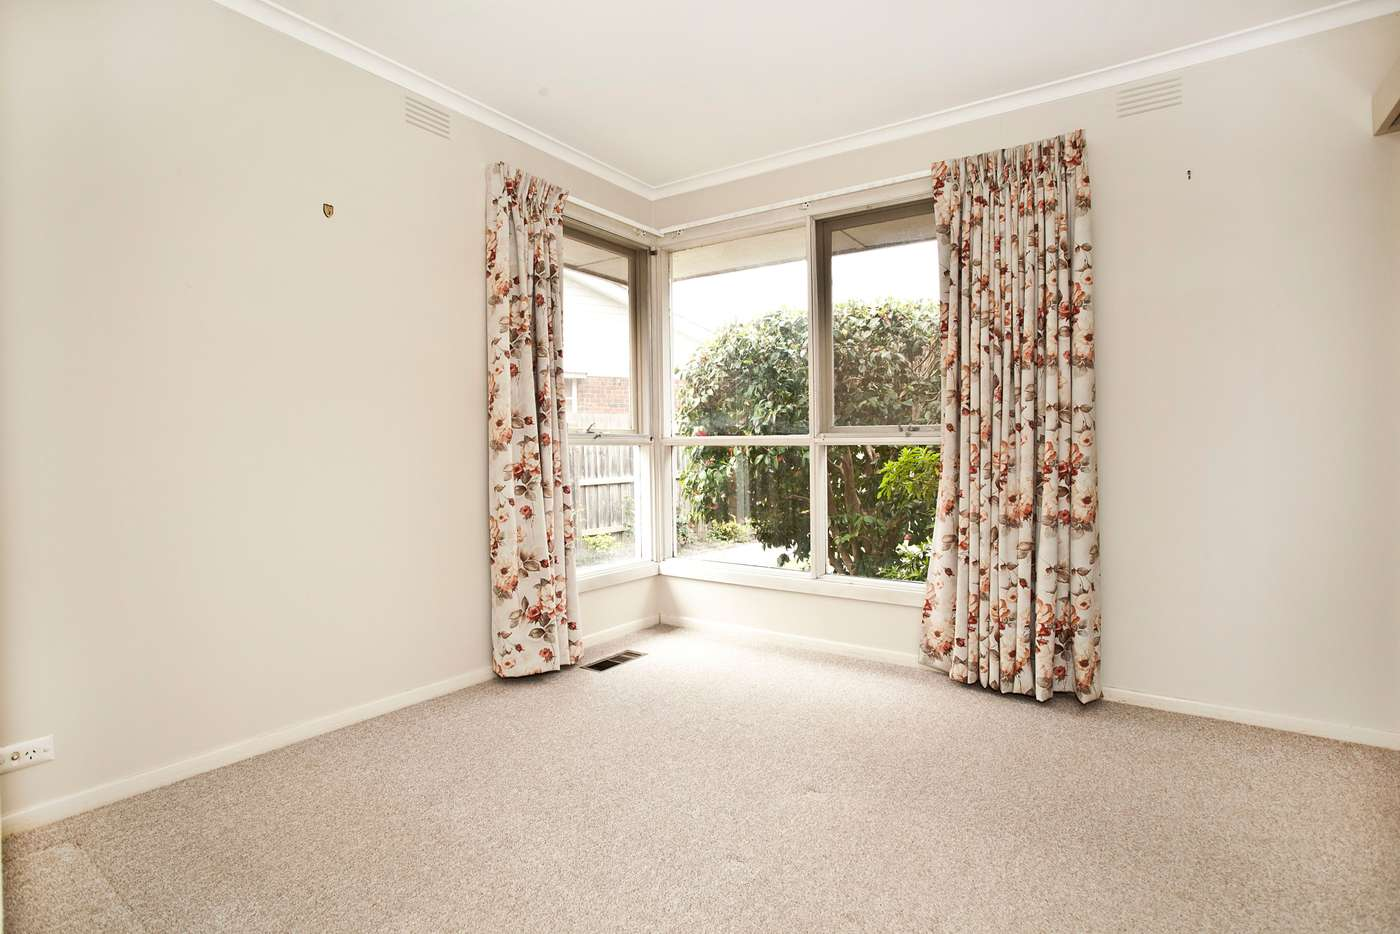 Sixth view of Homely house listing, 3 Gerrard Court, Glen Waverley VIC 3150